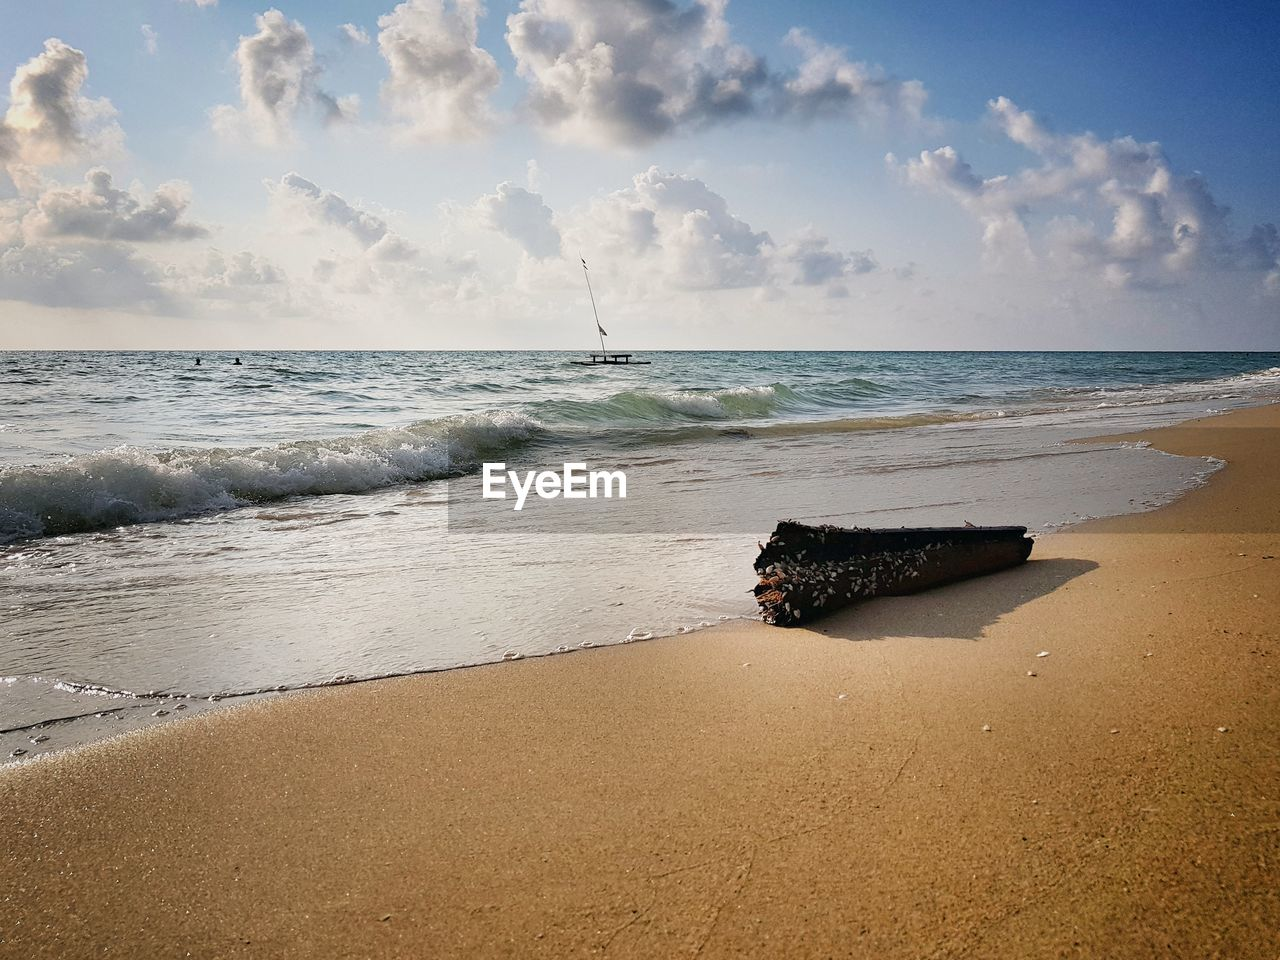 sea, beach, water, land, horizon over water, horizon, sky, sand, beauty in nature, scenics - nature, motion, cloud - sky, tranquility, tranquil scene, wave, nature, sport, non-urban scene, no people, outdoors